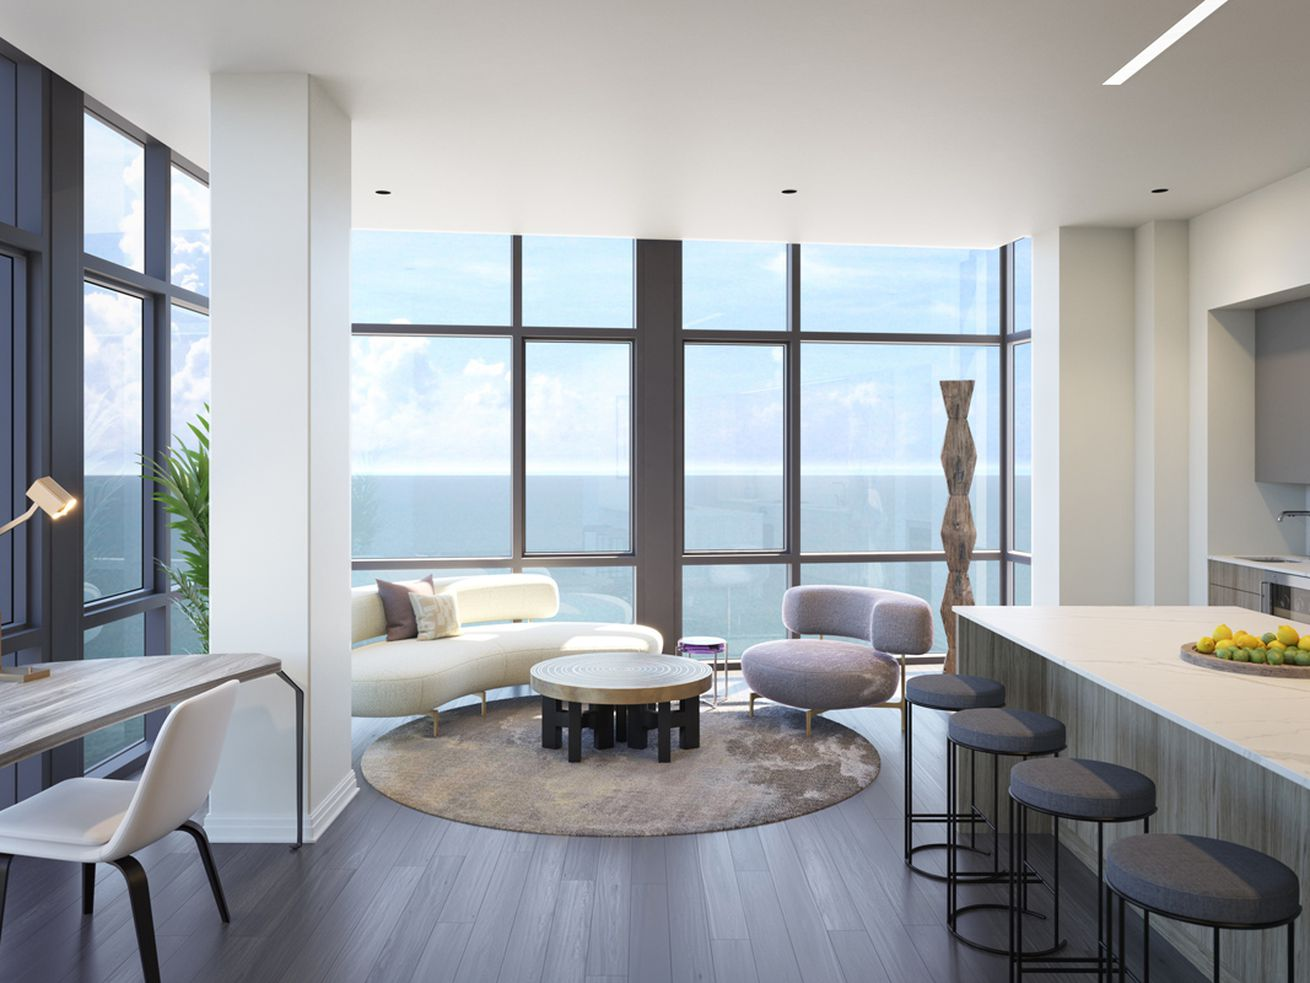 Lake Michigan views take center stage at 61 E. Banks.